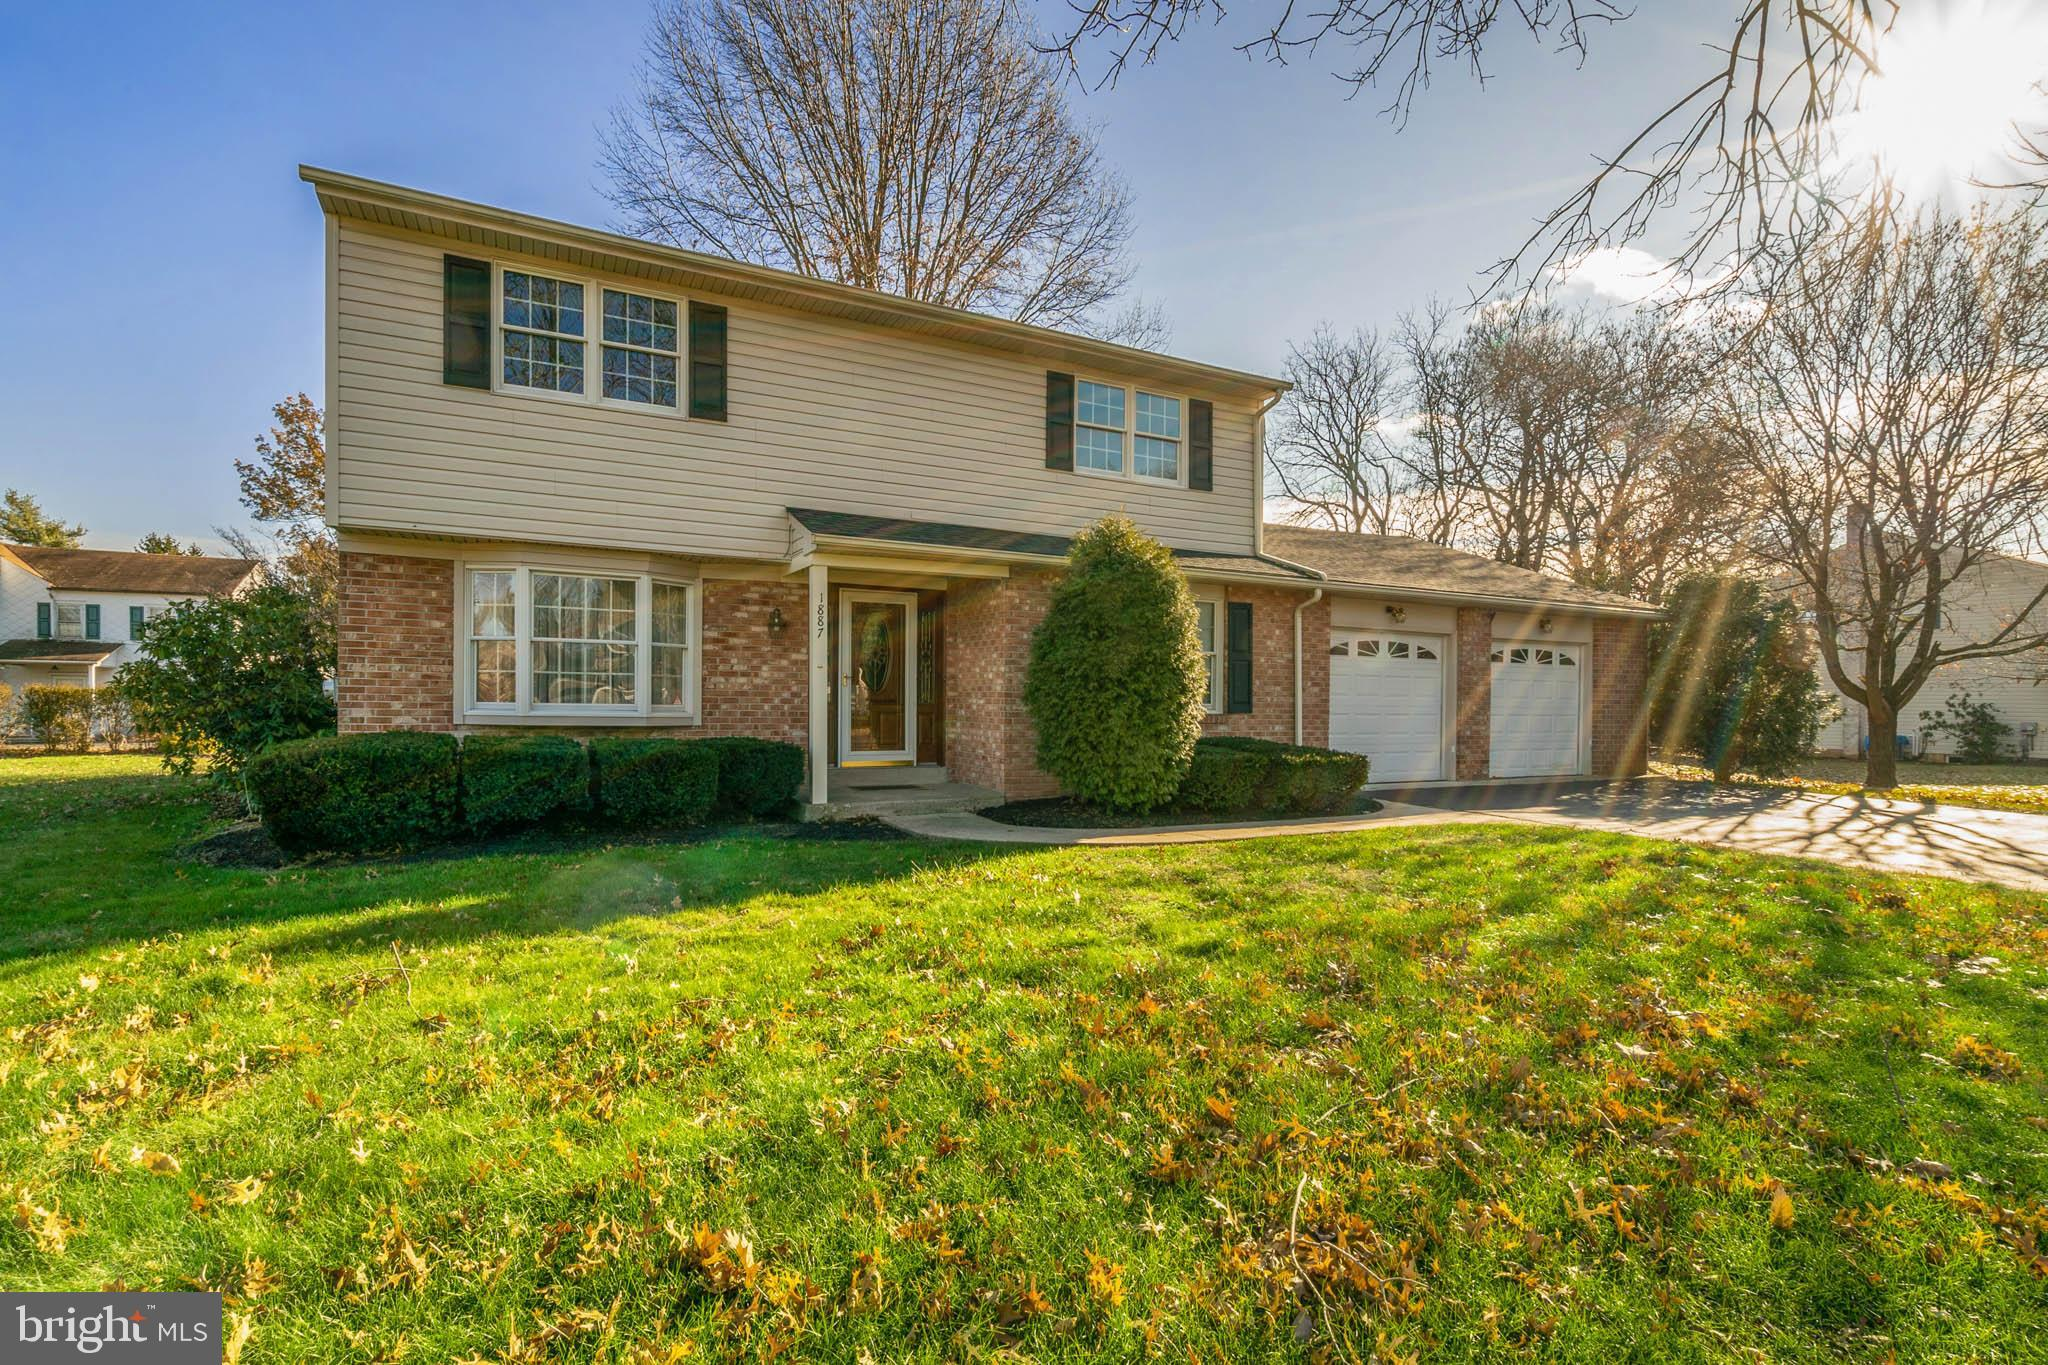 1887 CINDY LANE, HATFIELD, PA 19440